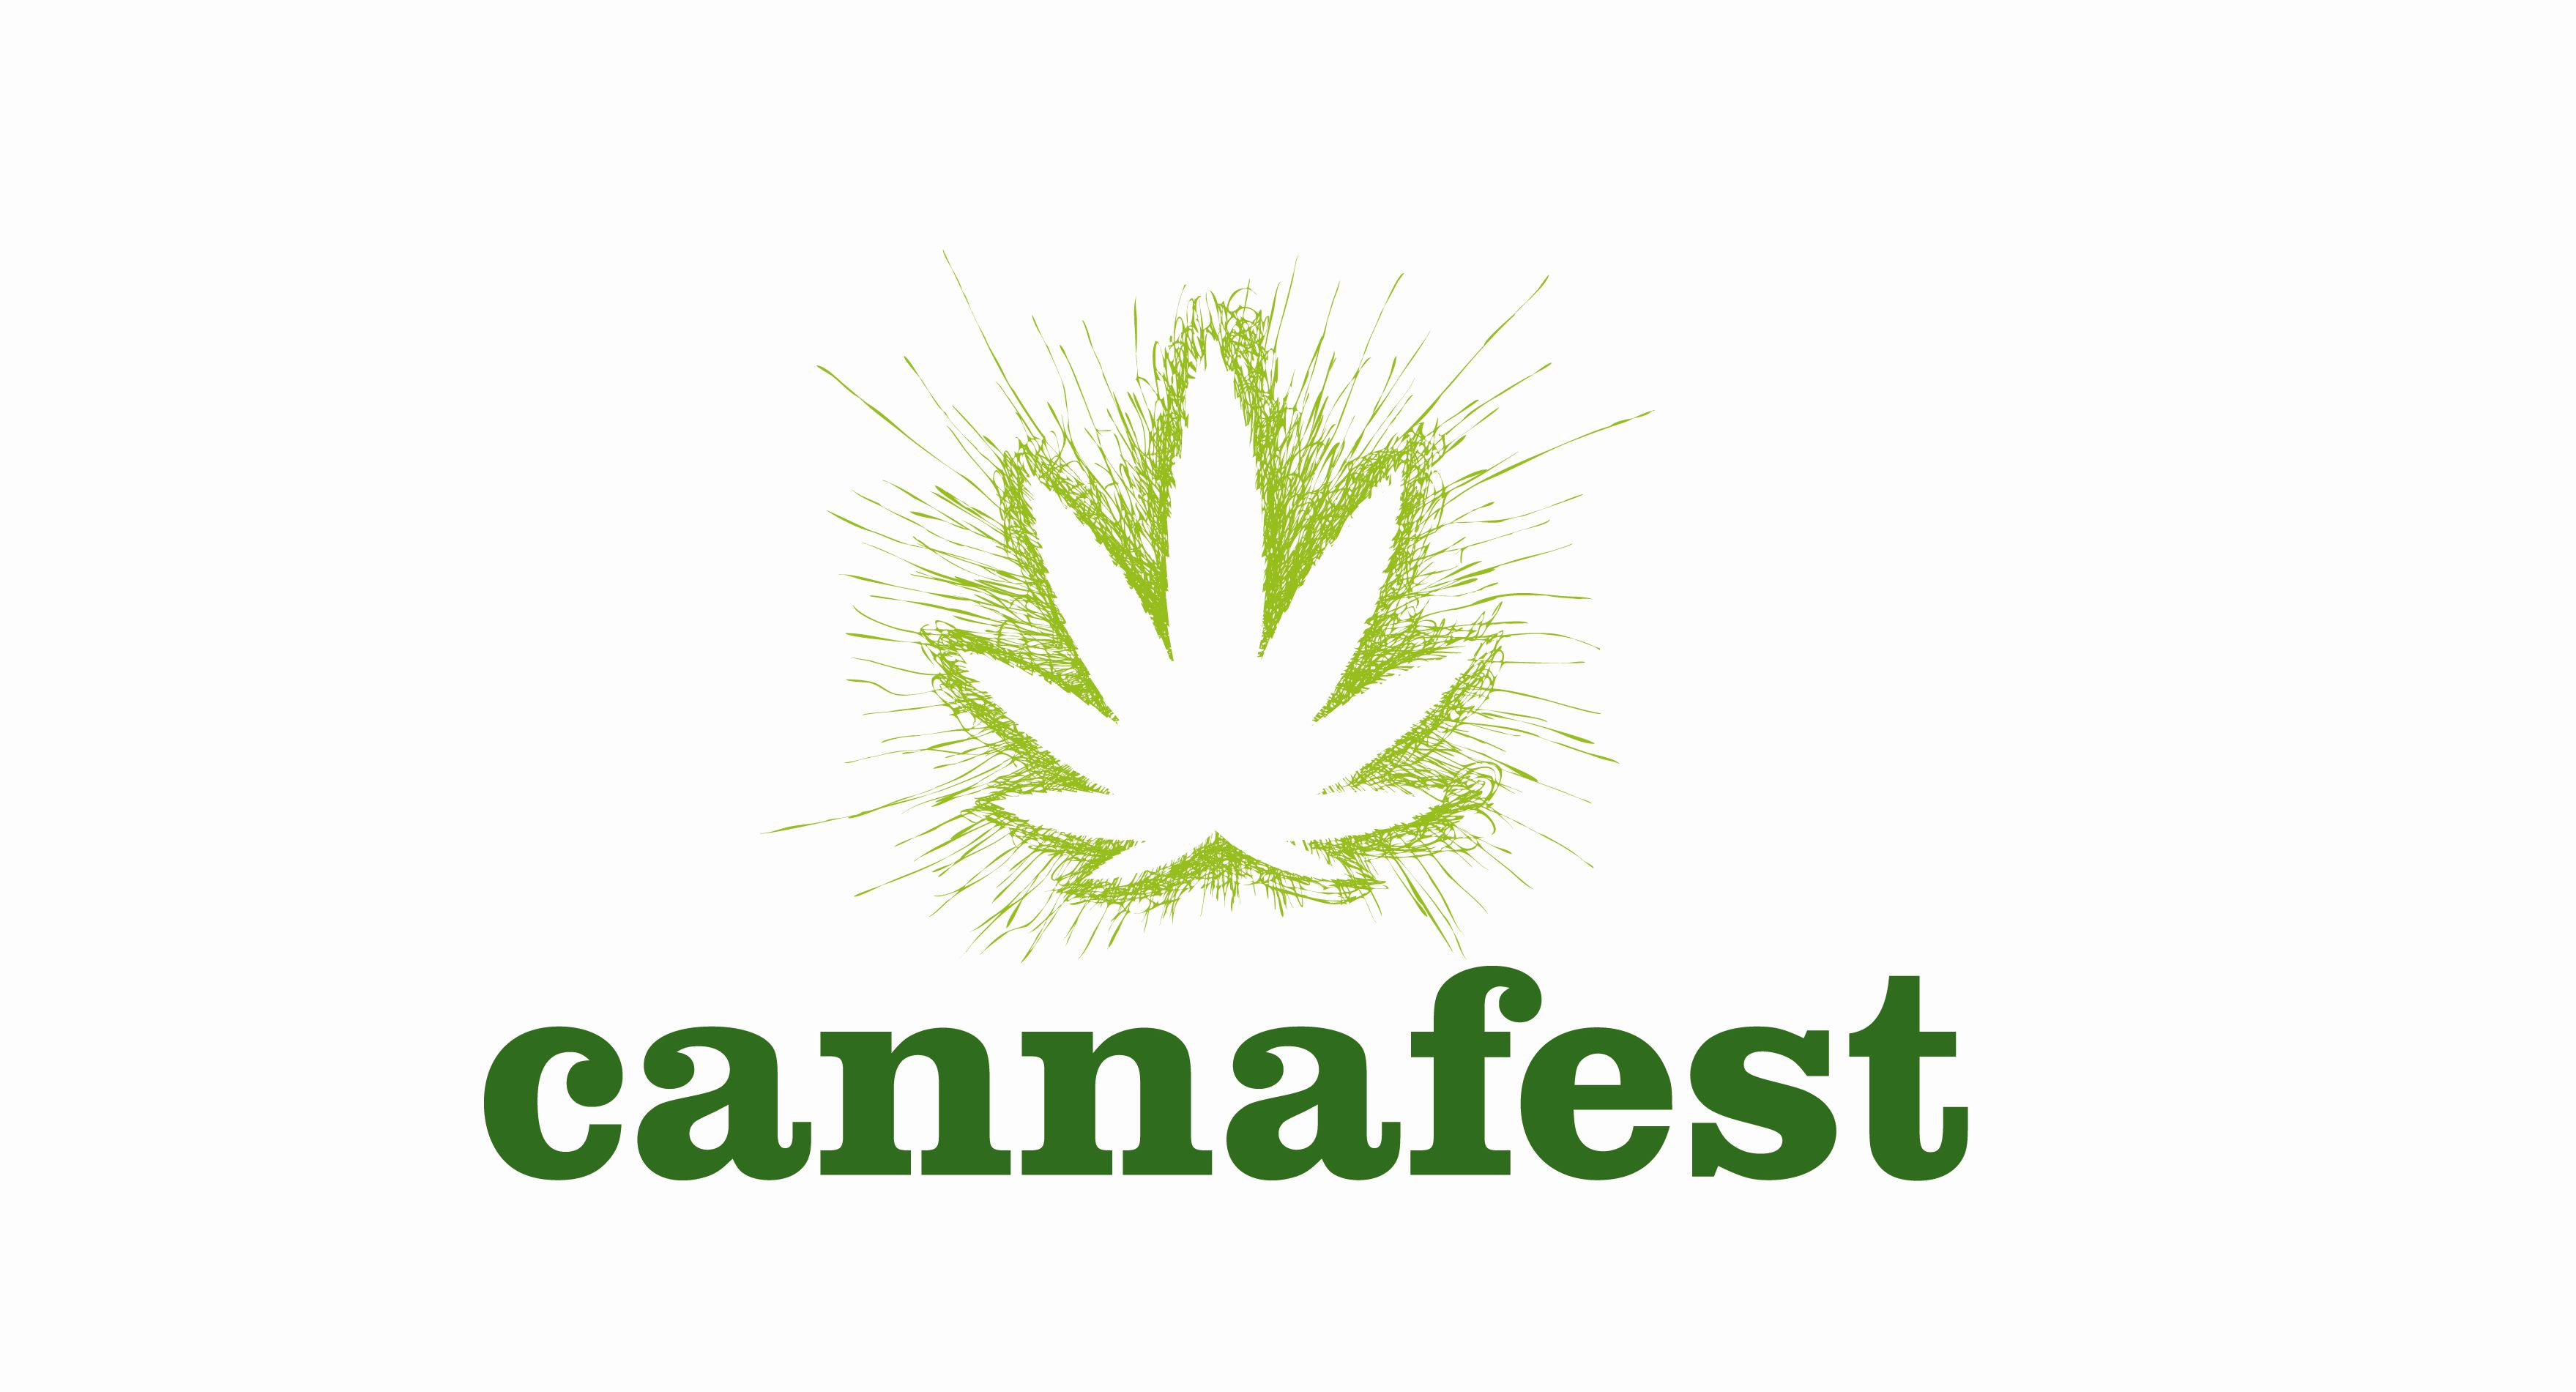 Cannafest